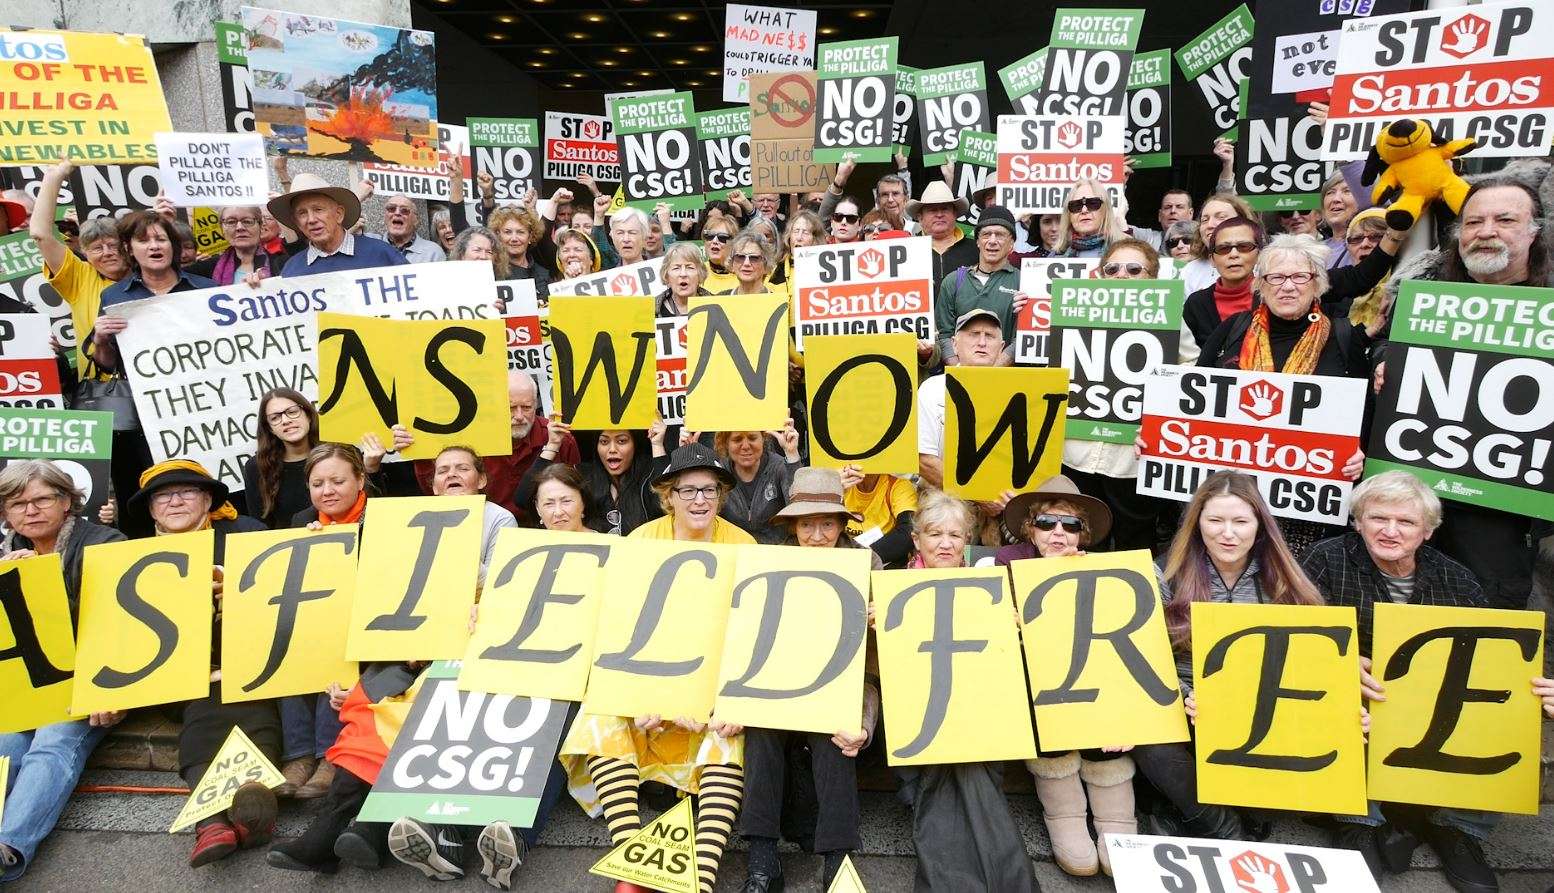 Pilliga Protest: The Moment 200 Farmers And Nannas Tell Santos To 'Frack